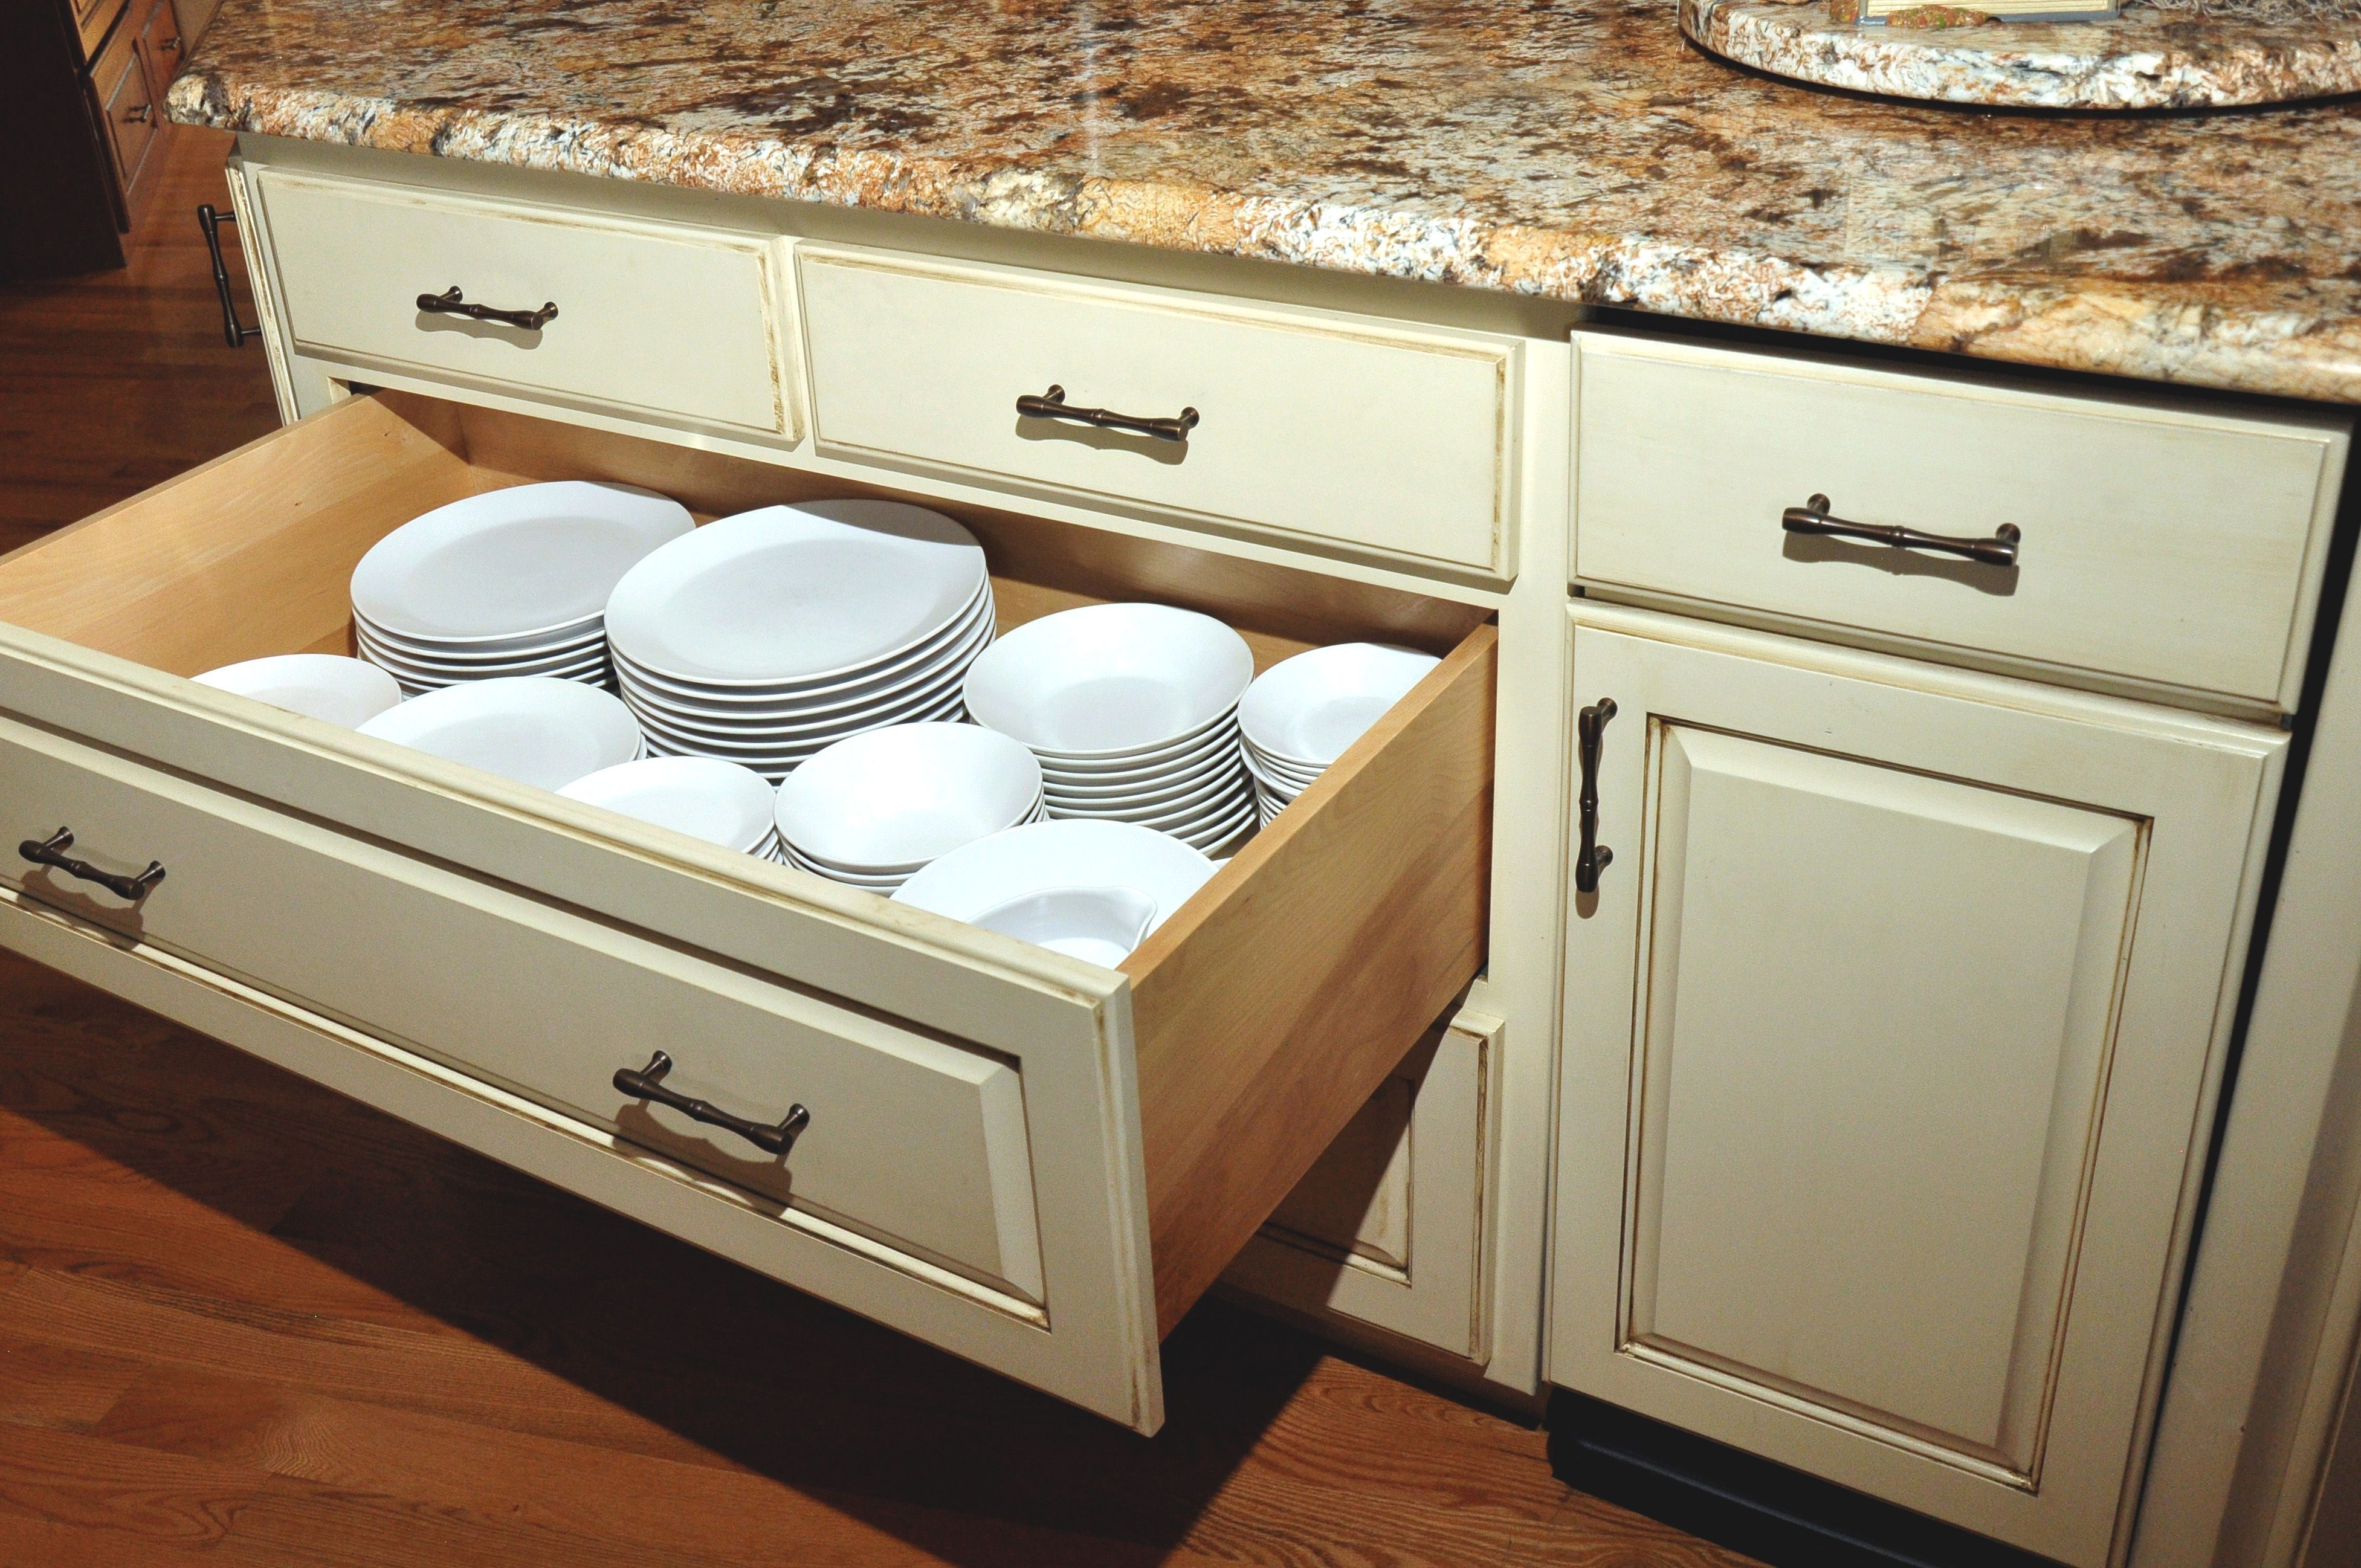 Lacking Upper Storage Use A Peg System To Store Your Dishes In A Large Drawer Custom Storage Storage Storage Design